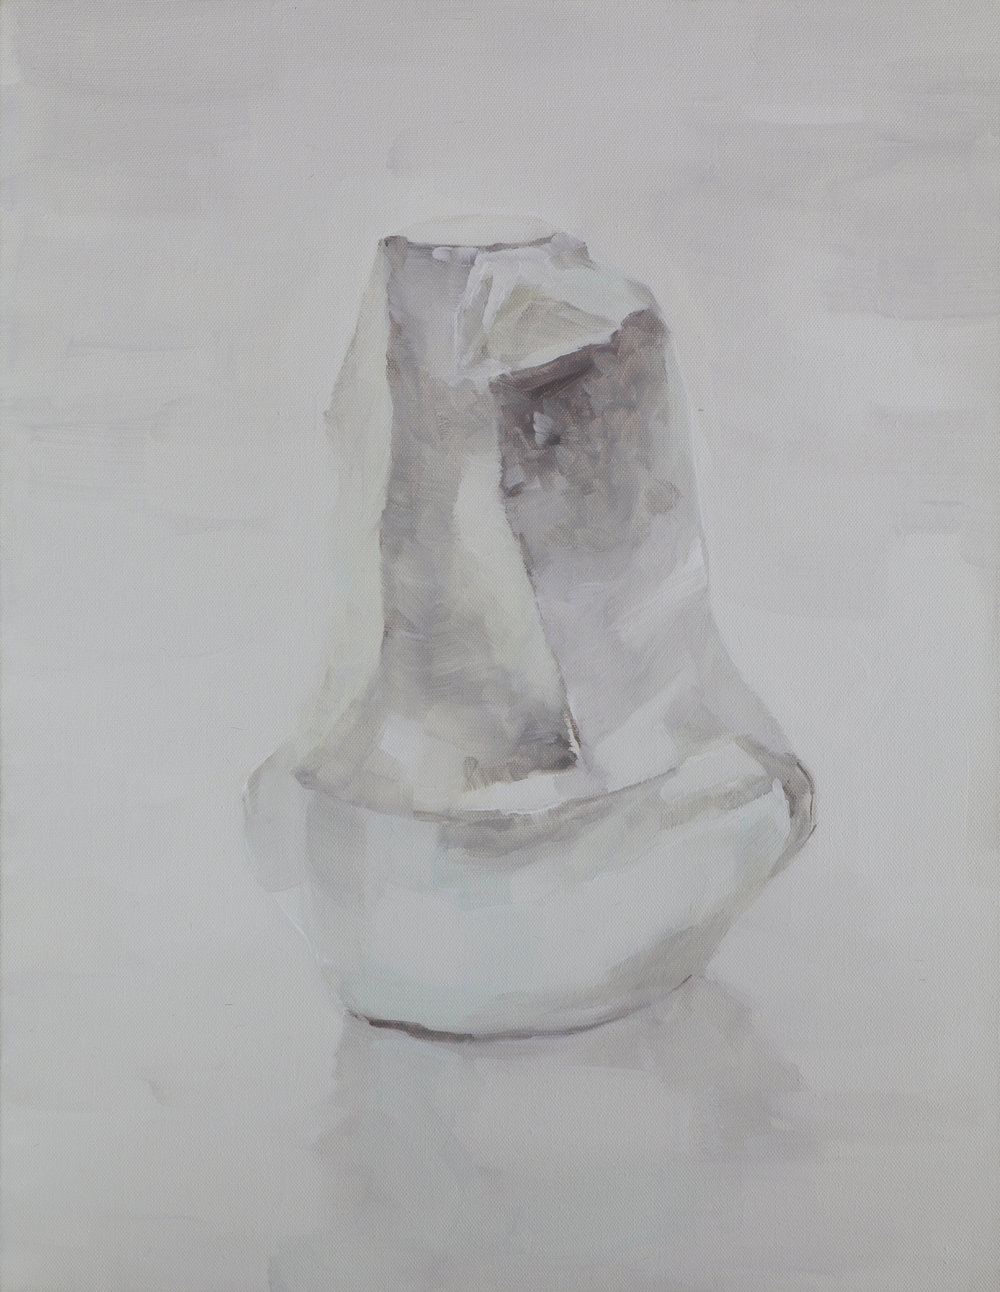 SH1804_Hong Soun_OrdinaryMonument M-1804_oil on canvas_52.5x41cm_2018.JPG